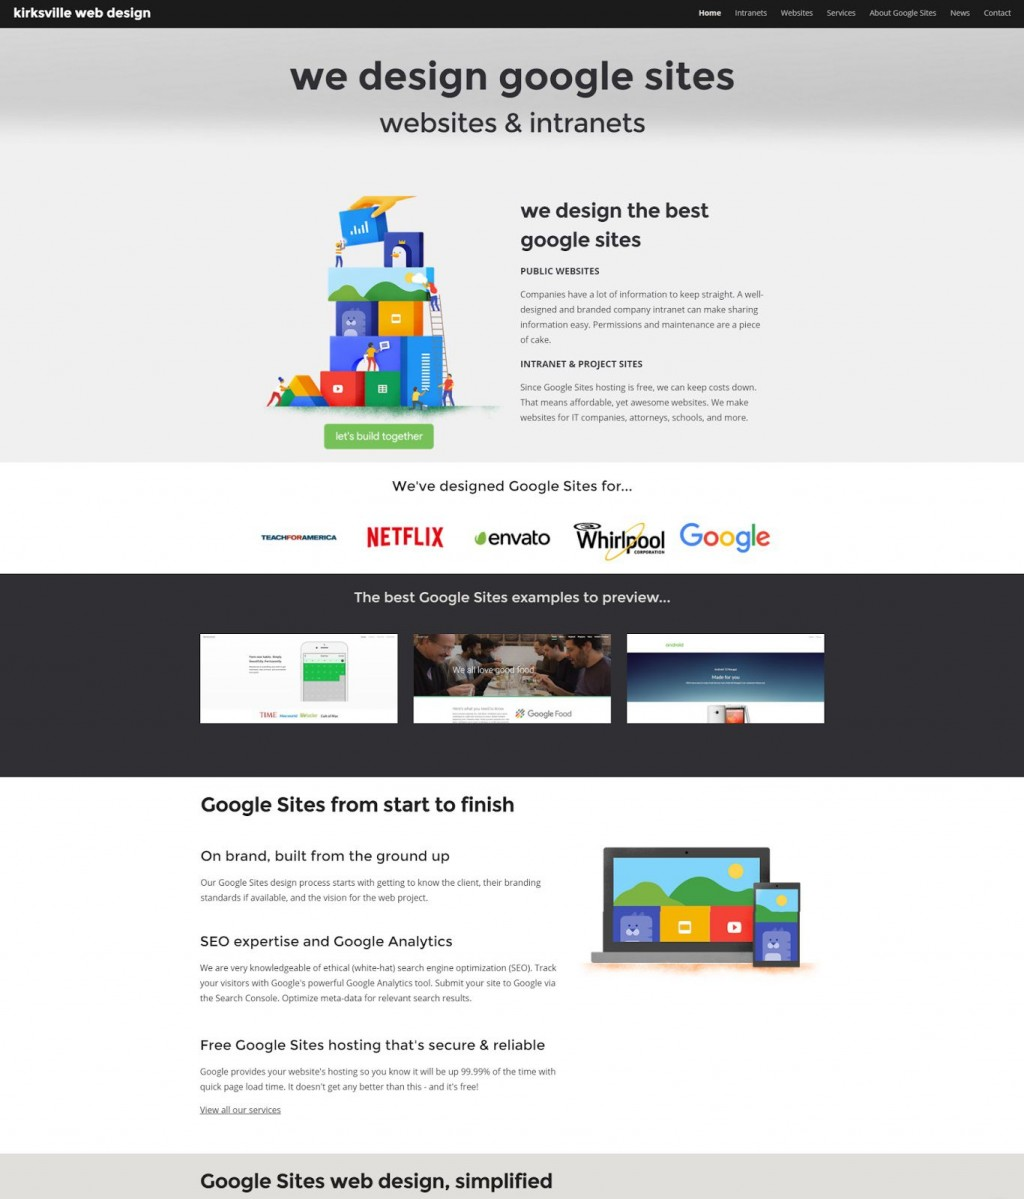 001 Excellent Free Google Site Template High Resolution  Templates Download New 2020Large